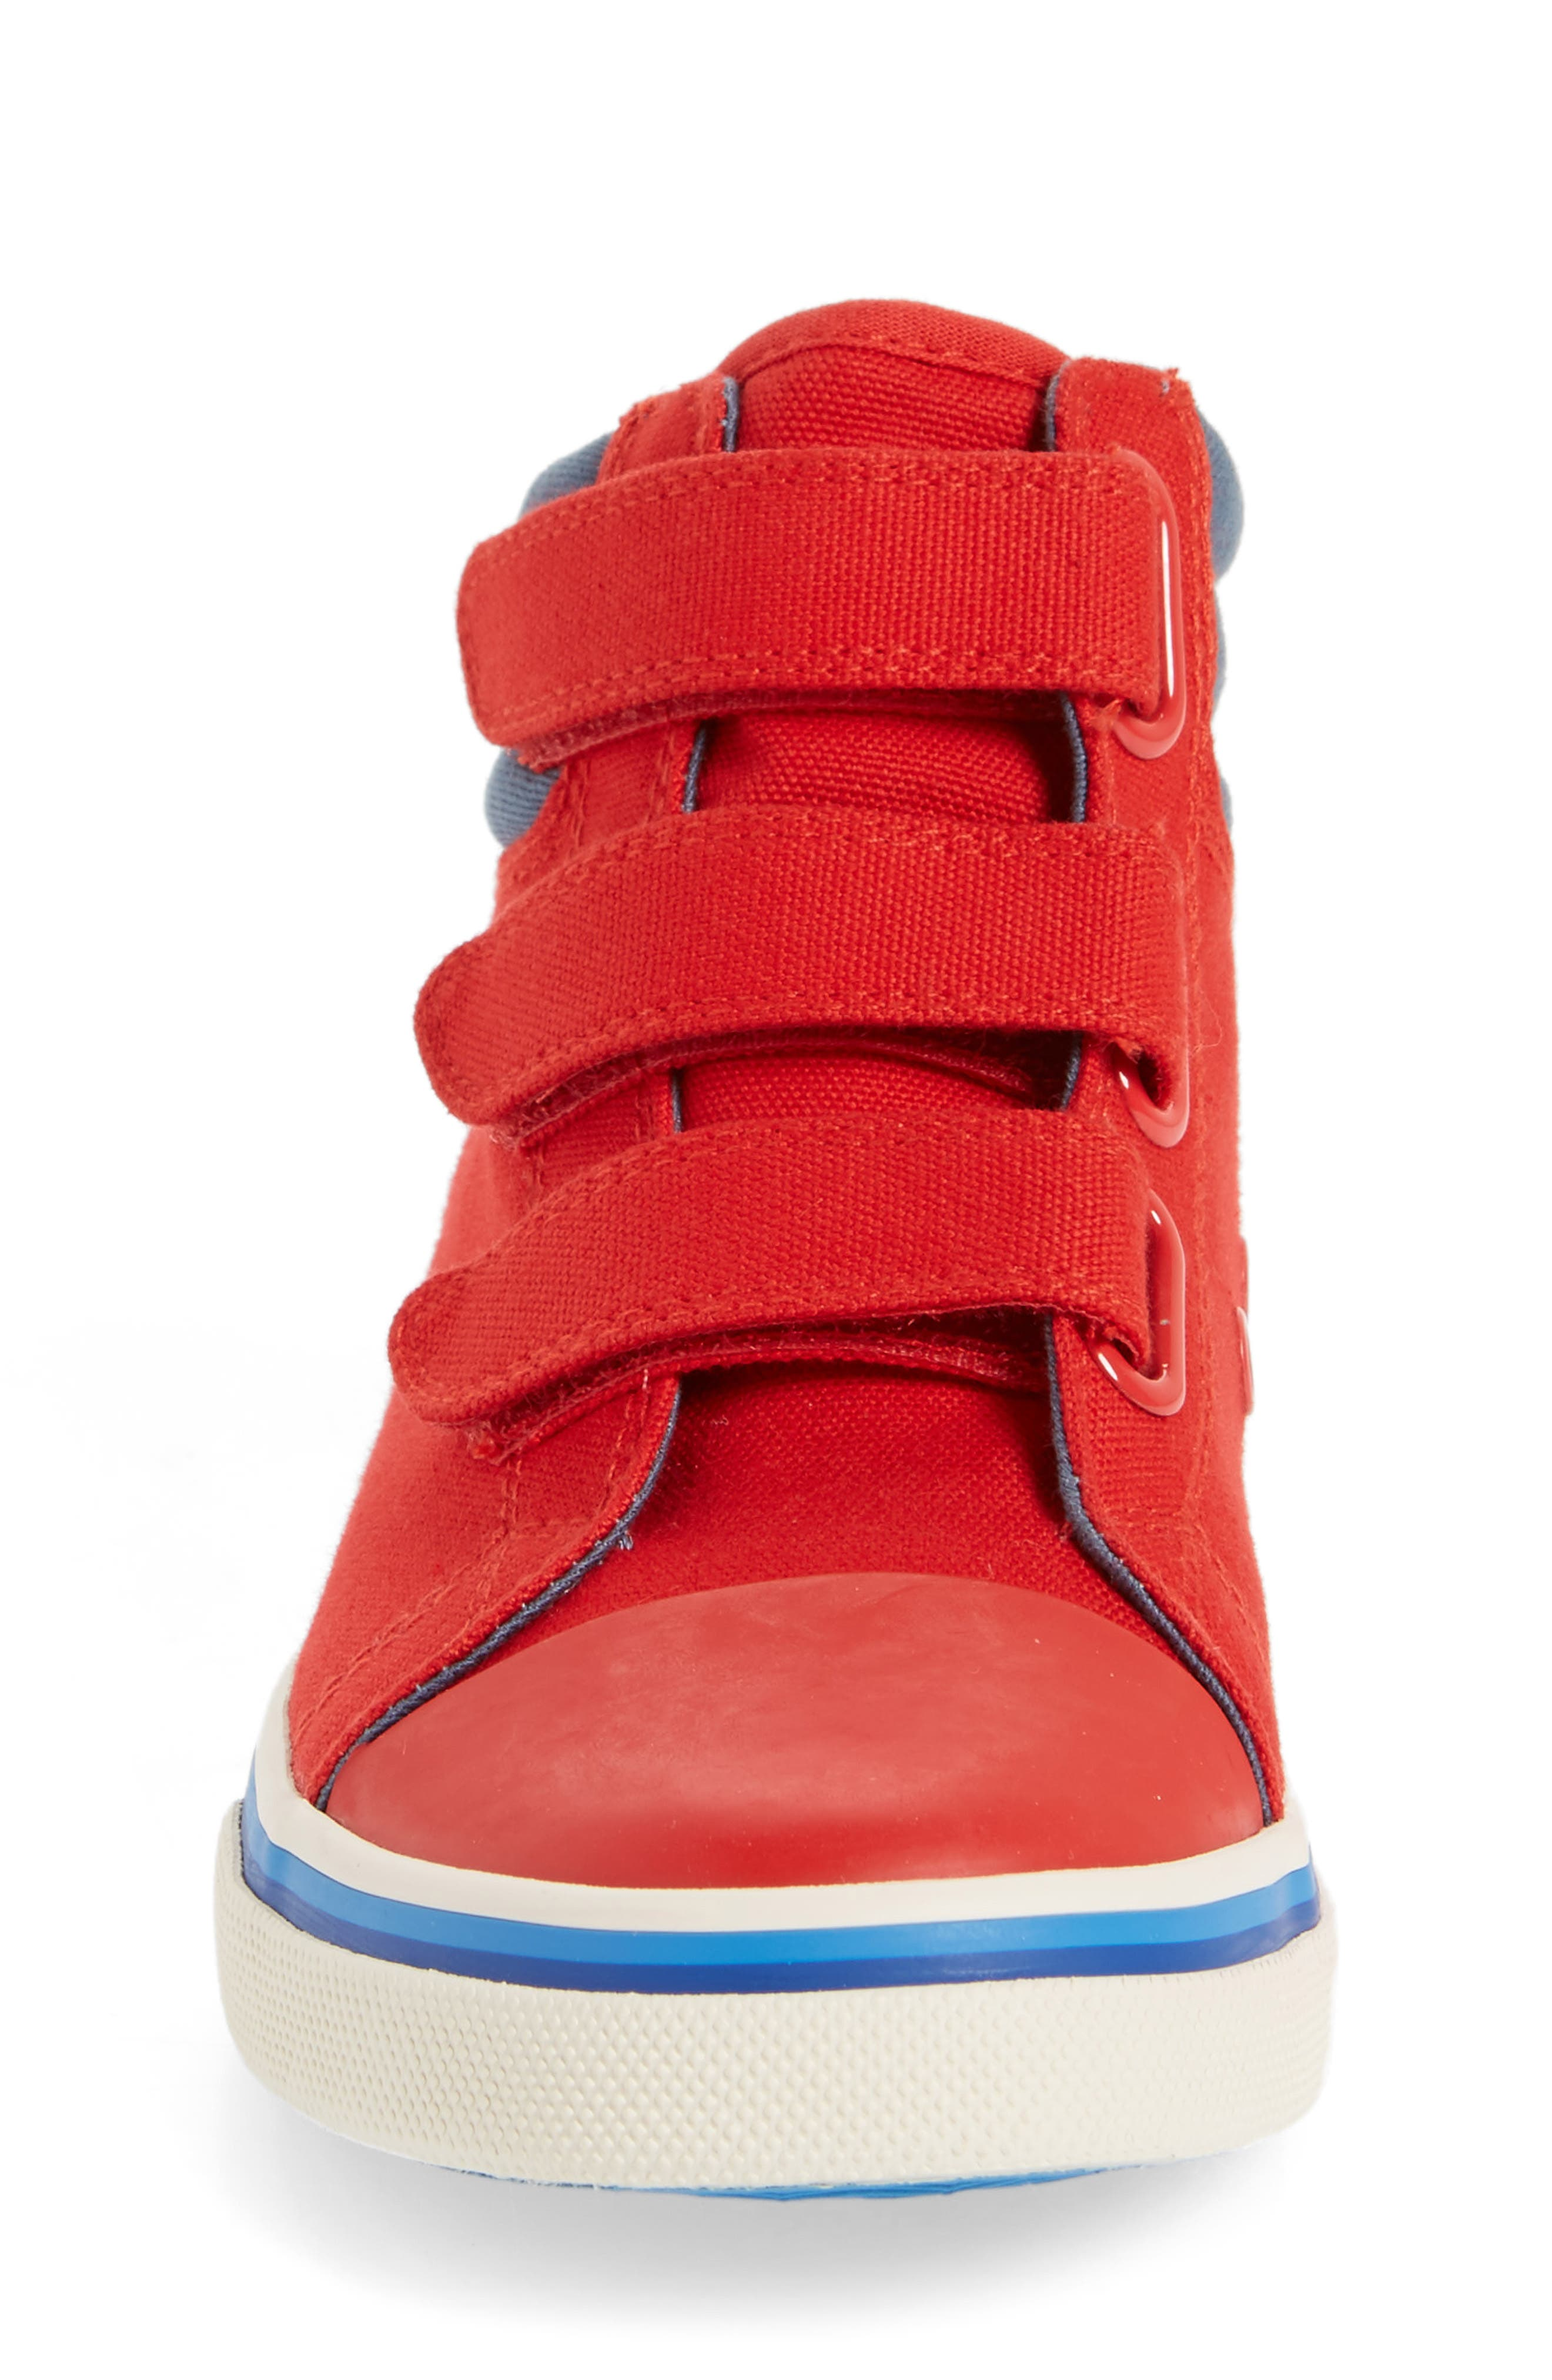 High Top Sneaker,                             Alternate thumbnail 4, color,                             Salsa Red